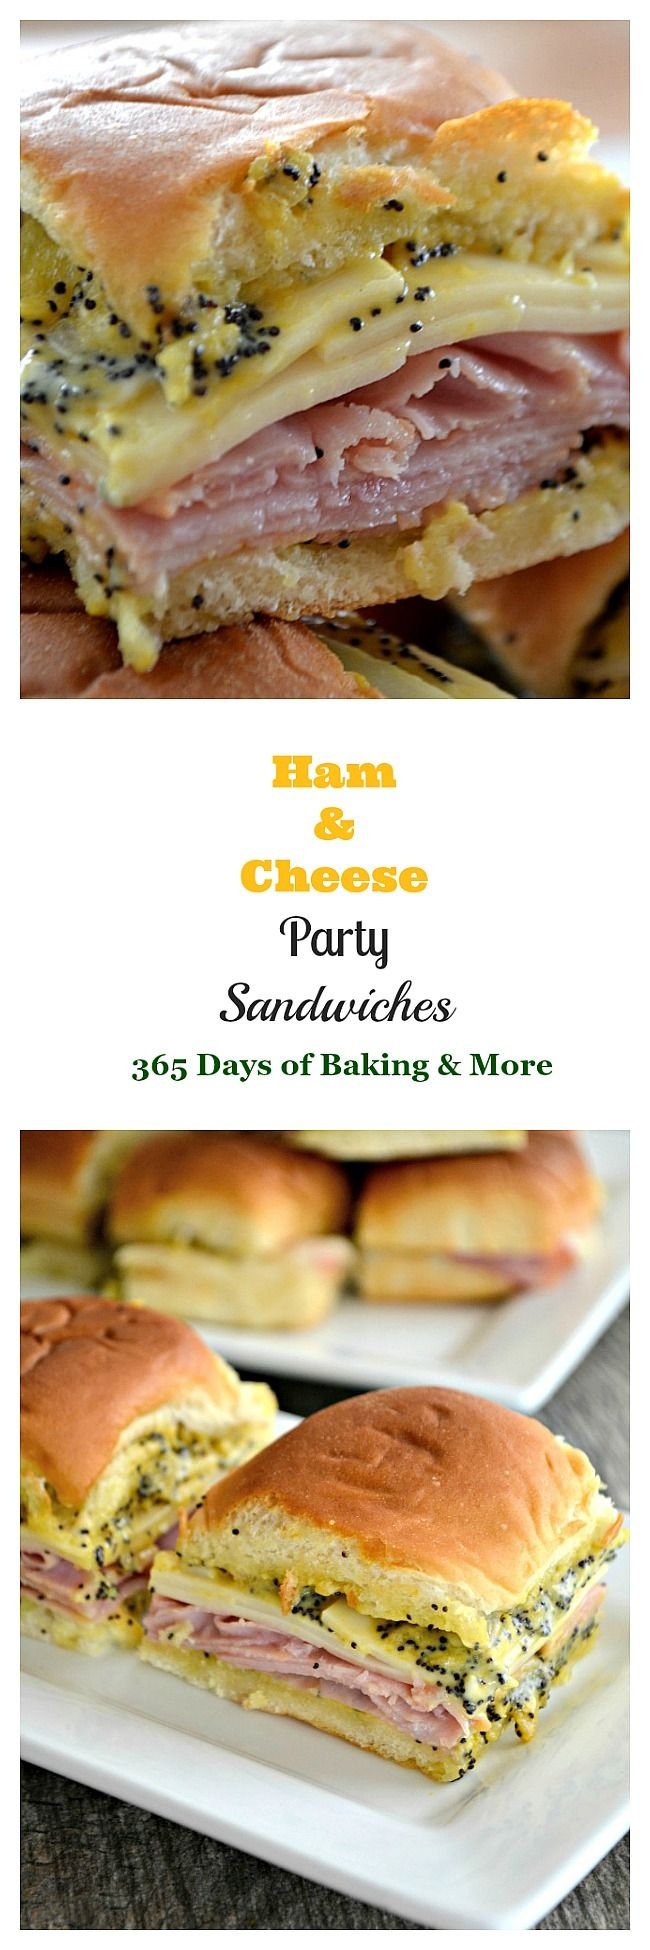 These Ham and Cheese Party Sandwiches on Hawaiian rolls with a poppy seed, mustard spread are perfect for your Game Day entertaining!